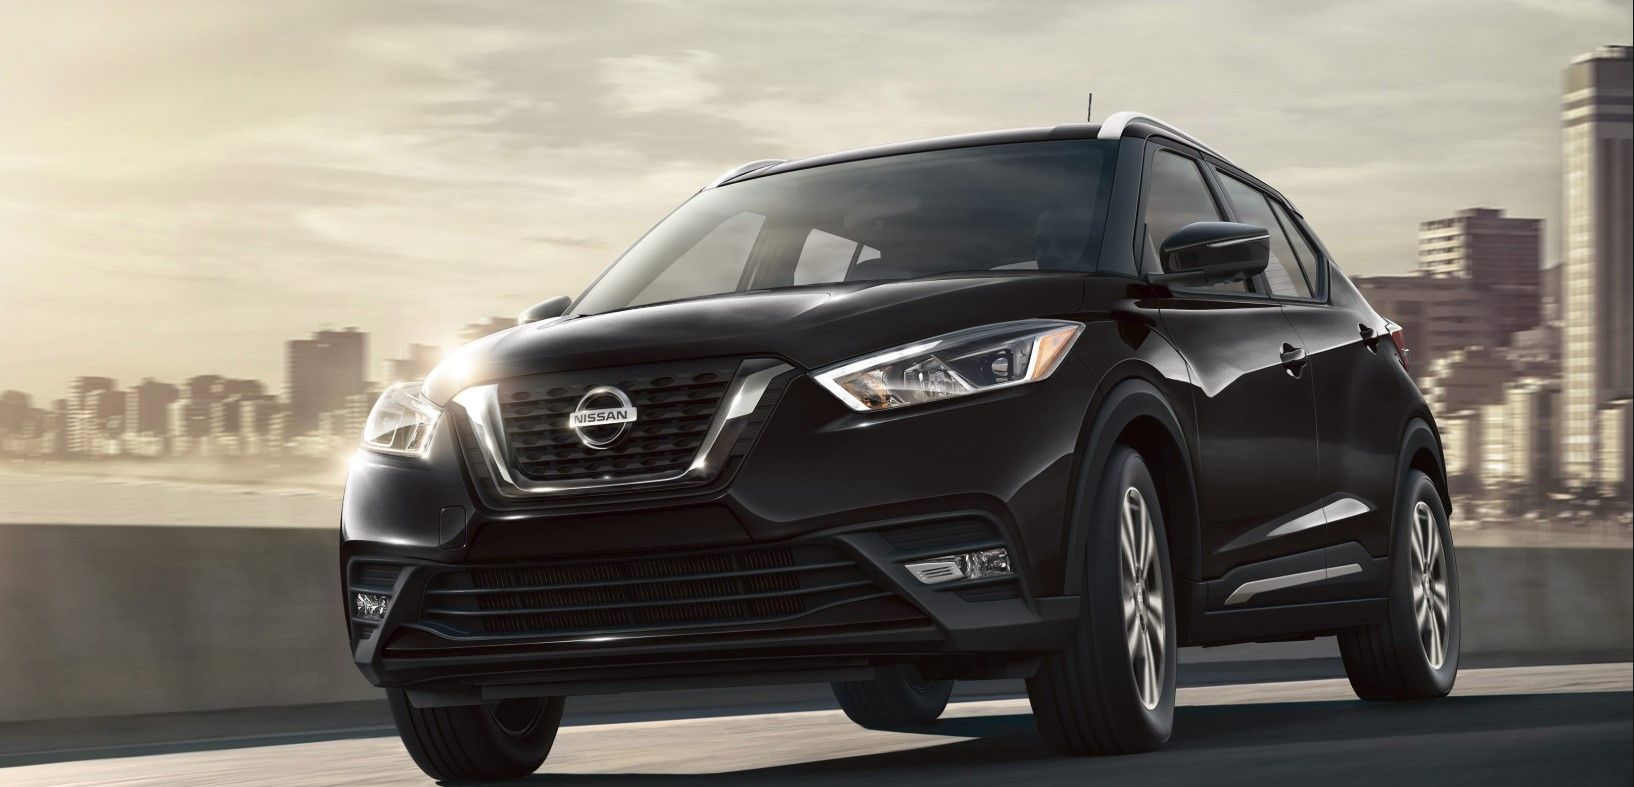 2019 Nissan Kicks for Sale near Burbank, IL